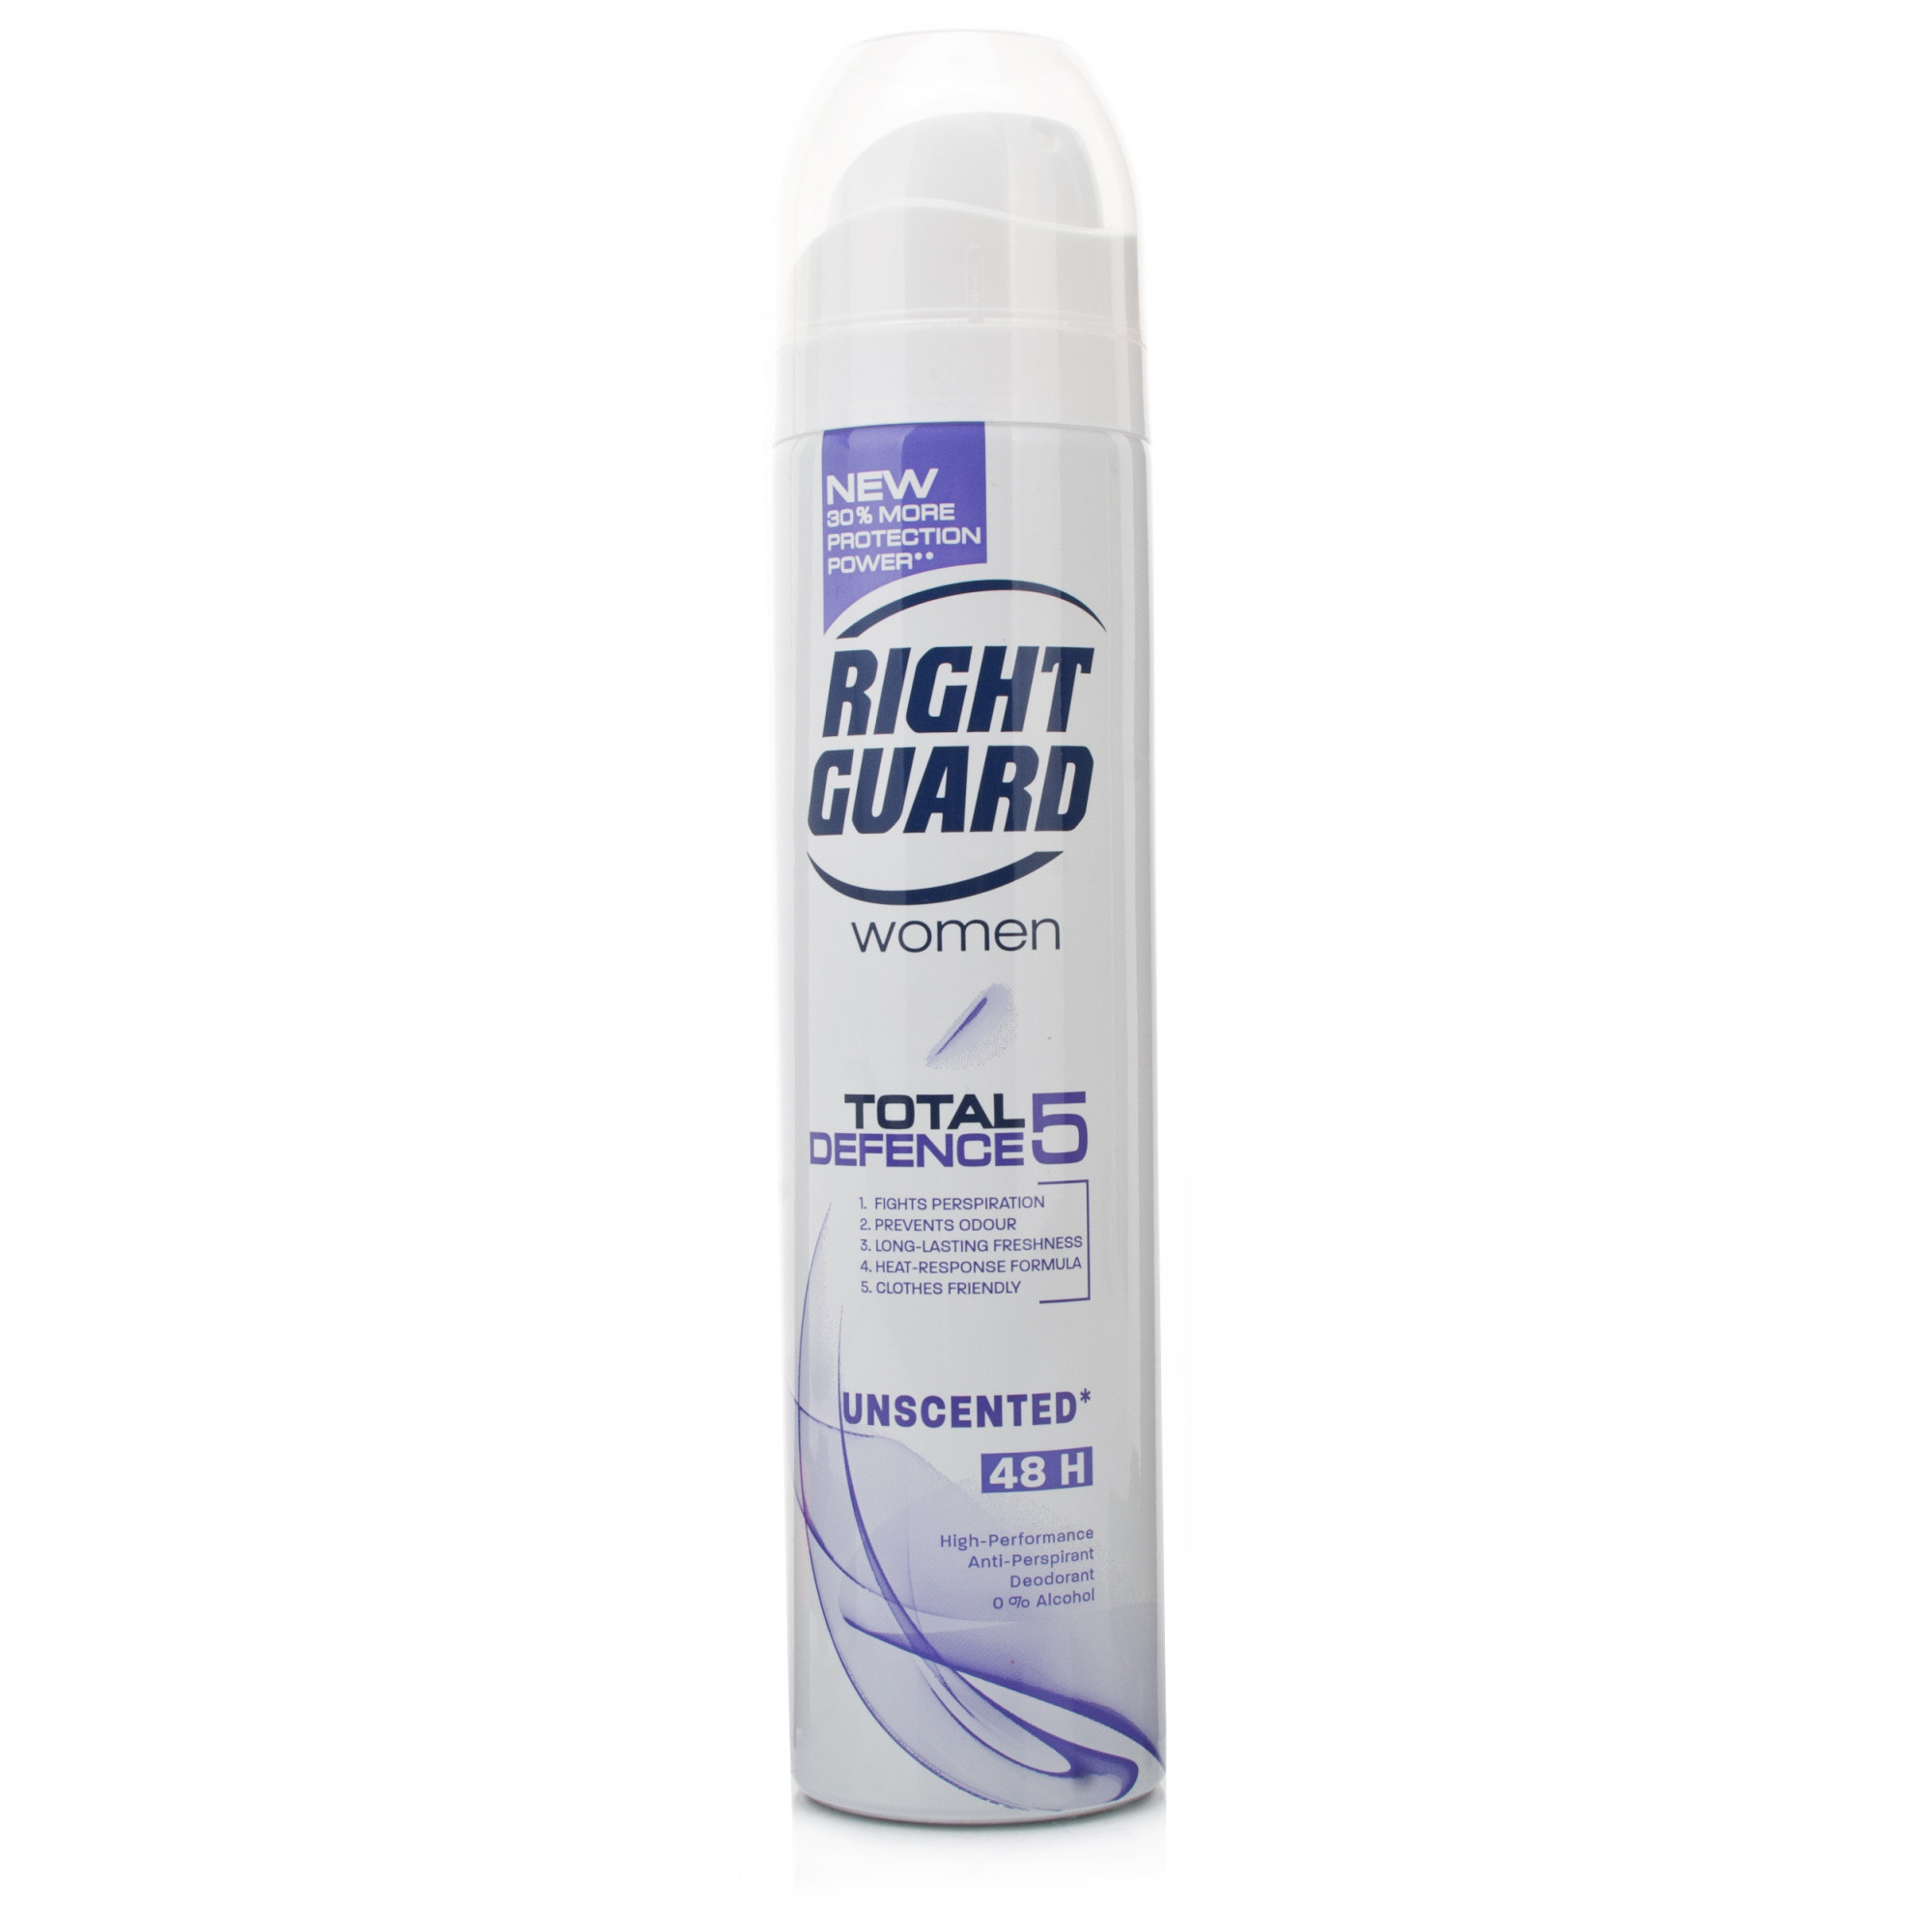 Right Guard Women Total Defence 5 Unscented Anti-Perspirant Deodorant